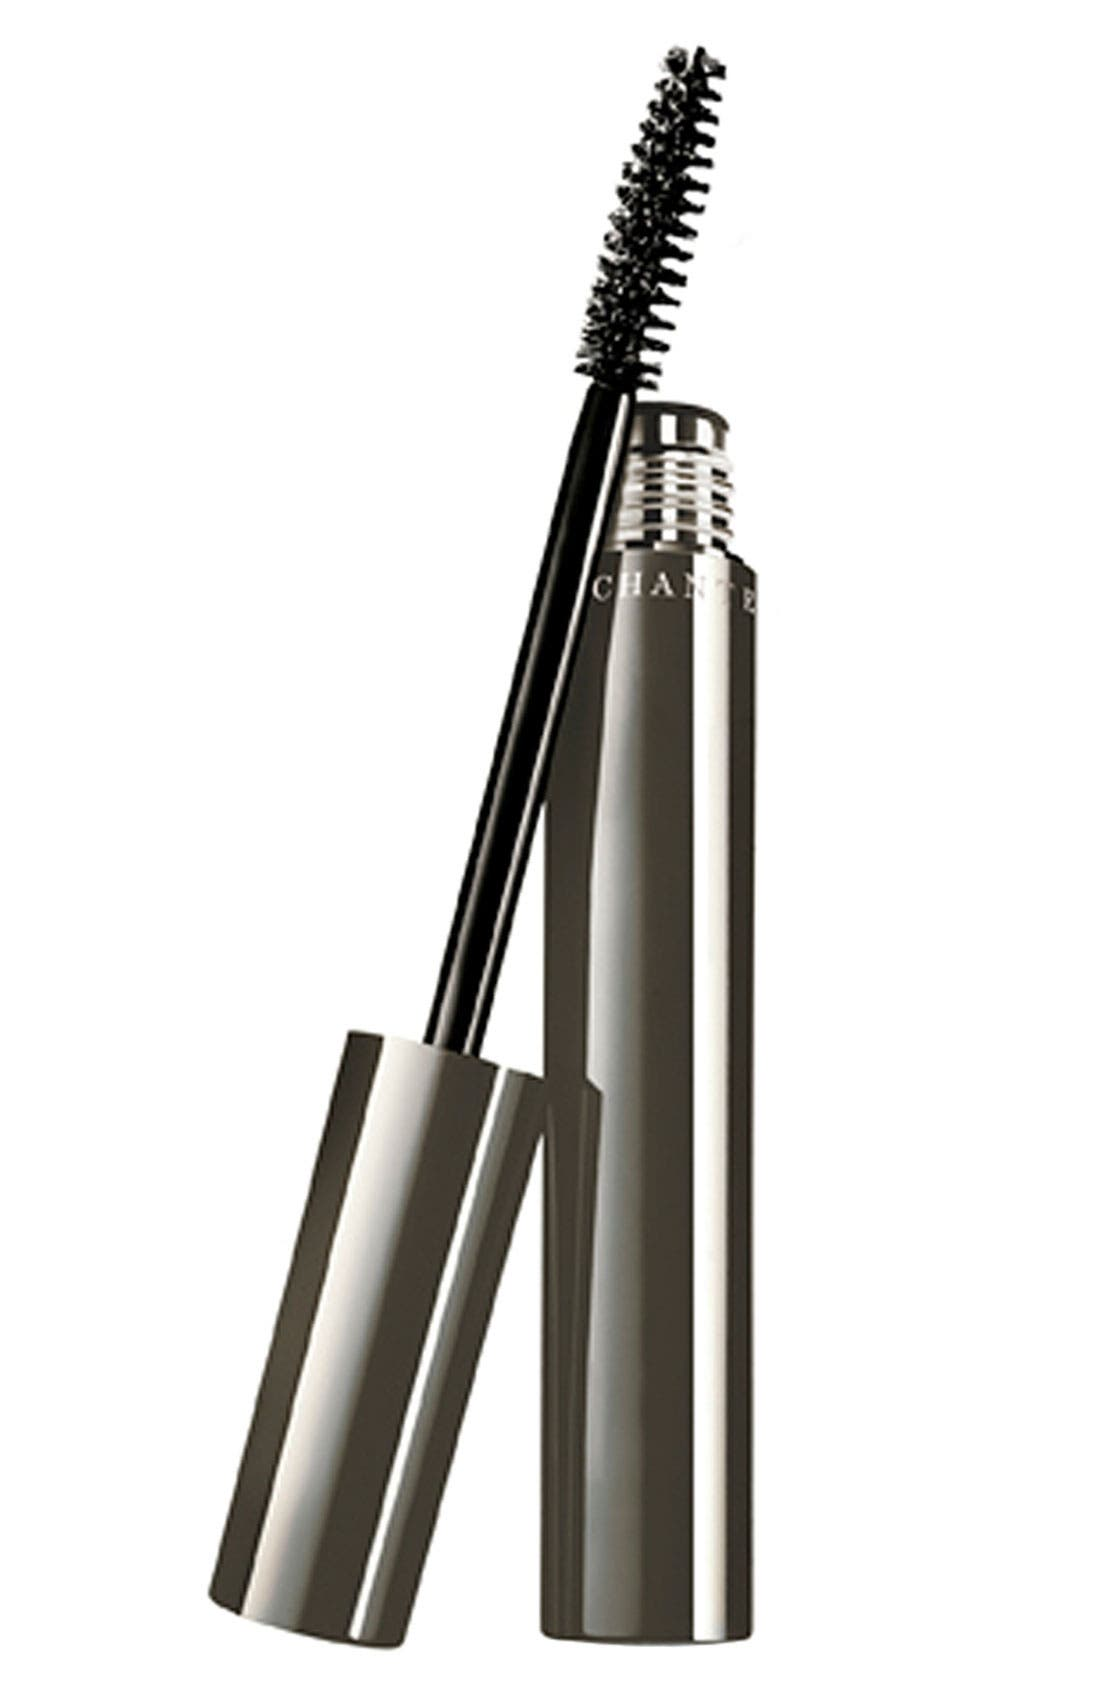 CHANTECAILLE,                             Faux Cils Mascara,                             Main thumbnail 1, color,                             NOIR